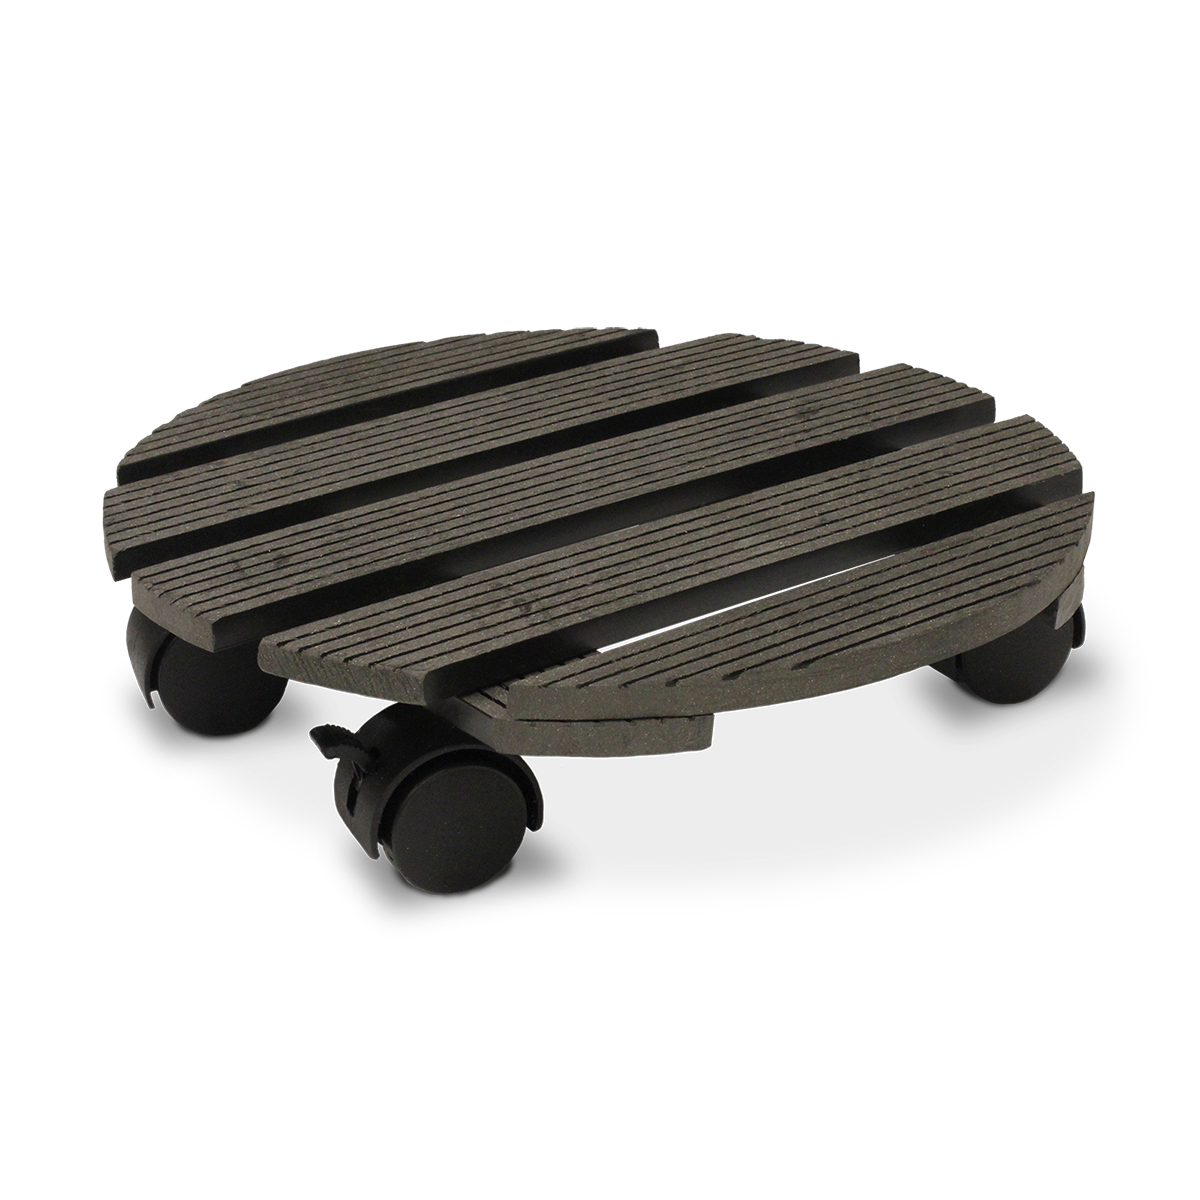 18530 Wood-Poly Pot Trolley Round Charcoal